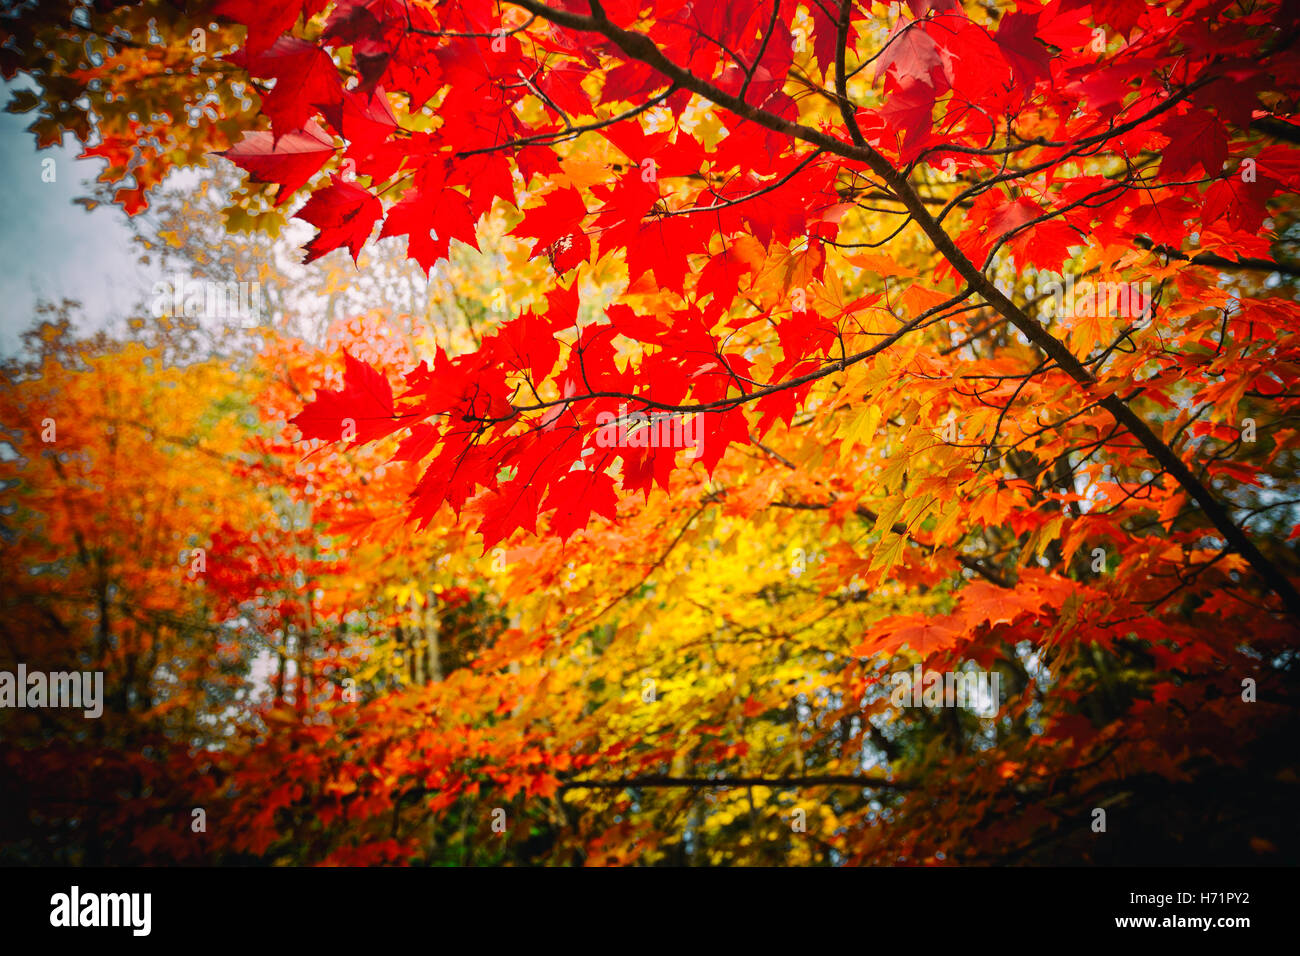 bright autumn leaves red and yellow maple leaves - Stock Image